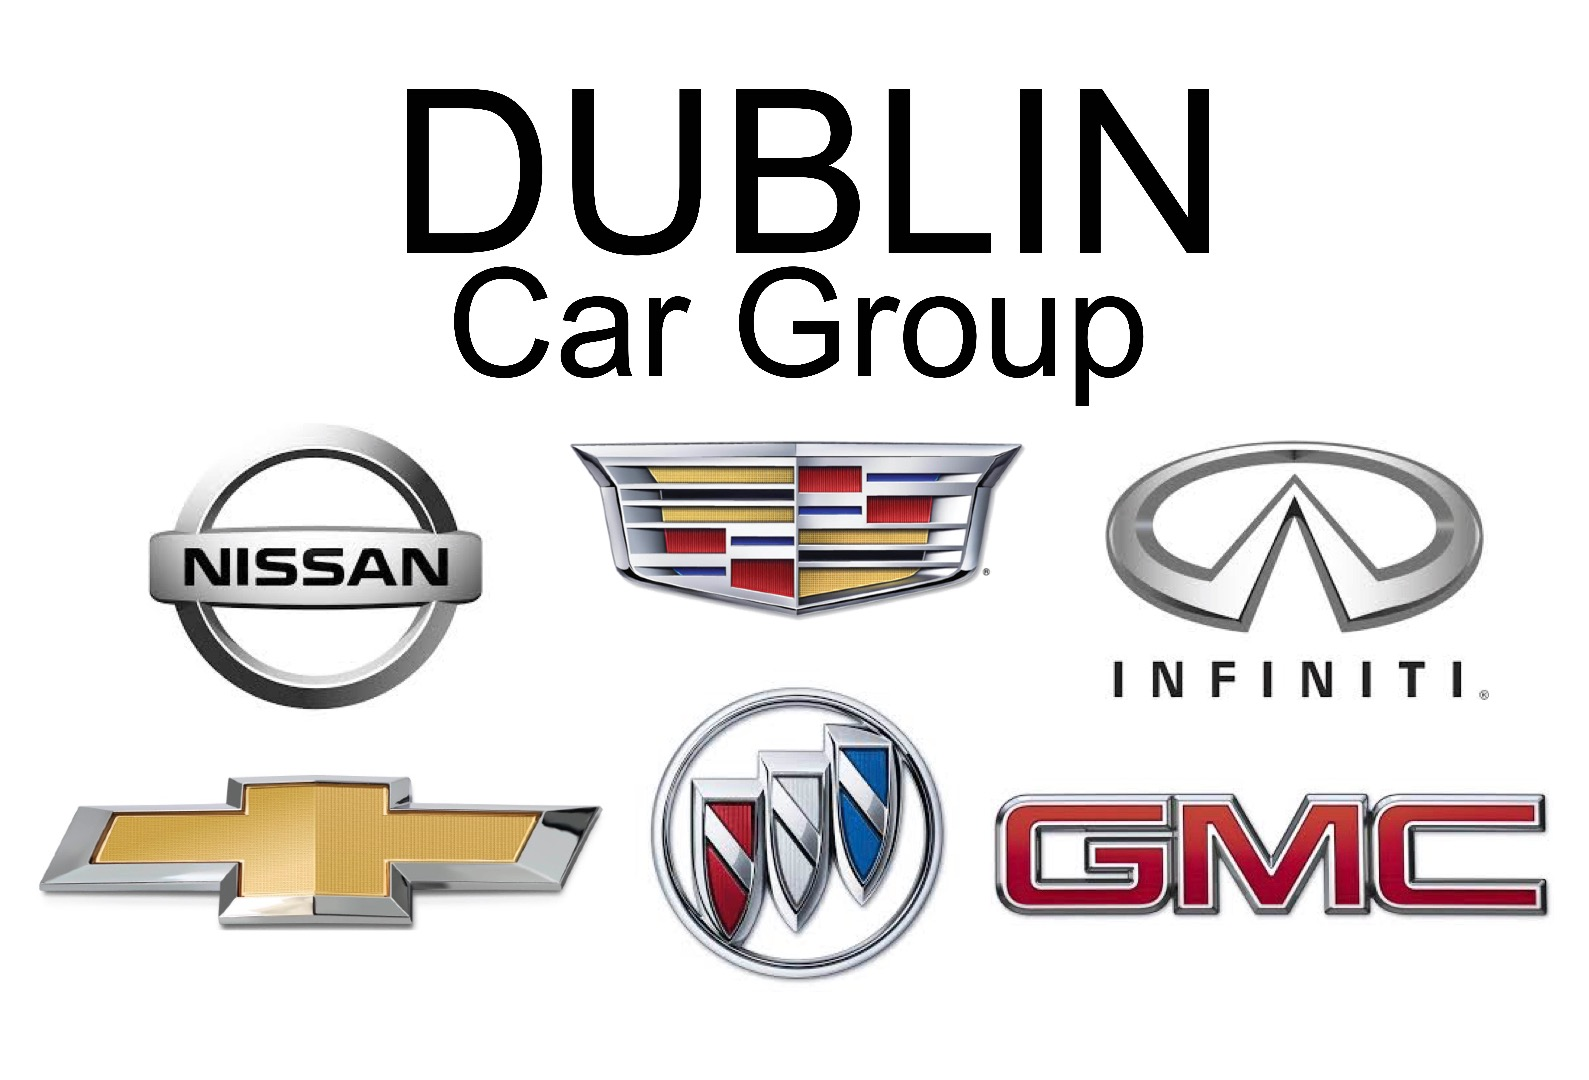 Dublin Car Group